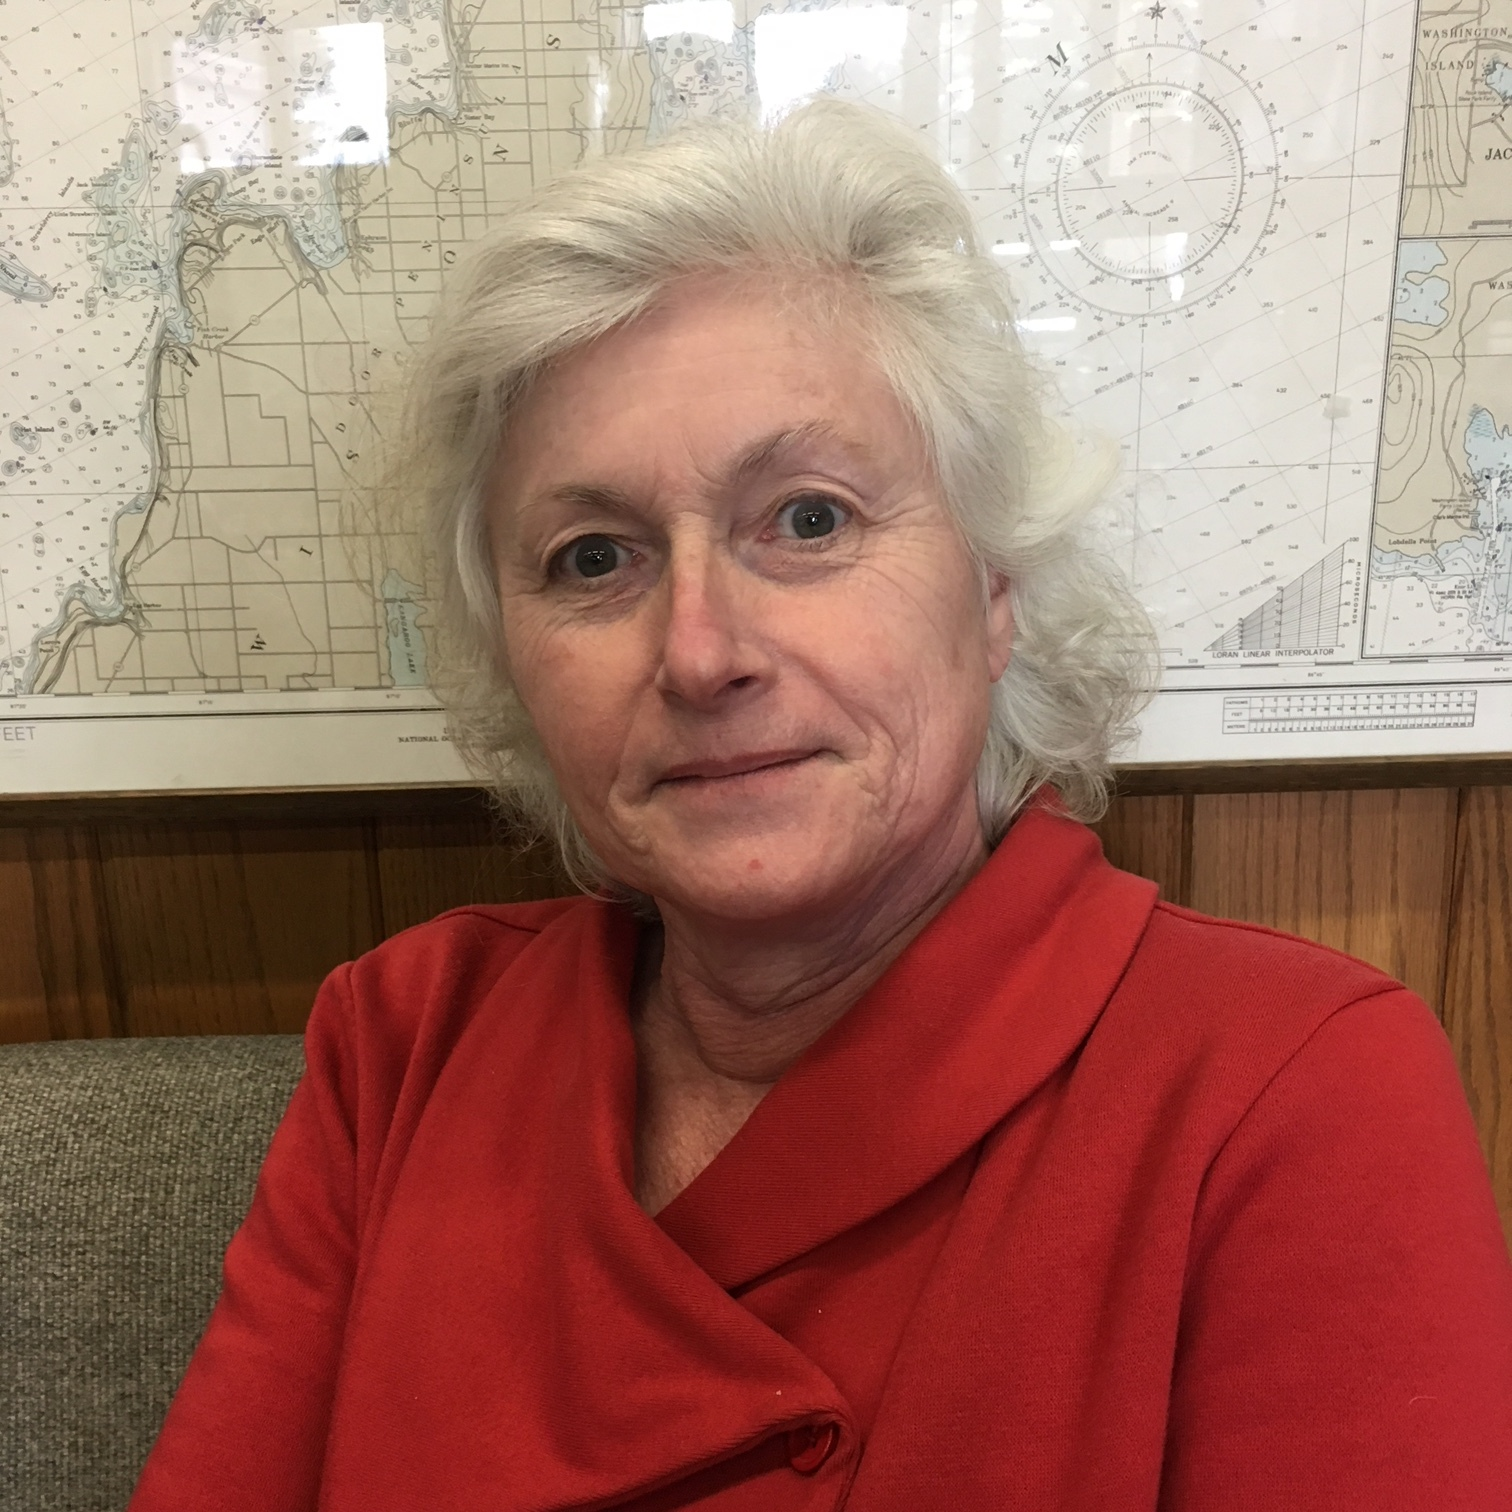 Beth Lux - Beth Lux was born and raised in Cudahy, WI. She received a BS from UW-Milwaukee and her MD from Medical College of WI. Beth has worked throughout Wisconsin. She was a lifeguard and Red Cross WSI for eight years in high school, college and medical school. Married 25 years to Hans Lux, they have nine children. Beth started working at the Rec on April 1st, 2016. Her hobbies include cooking and cleaning.